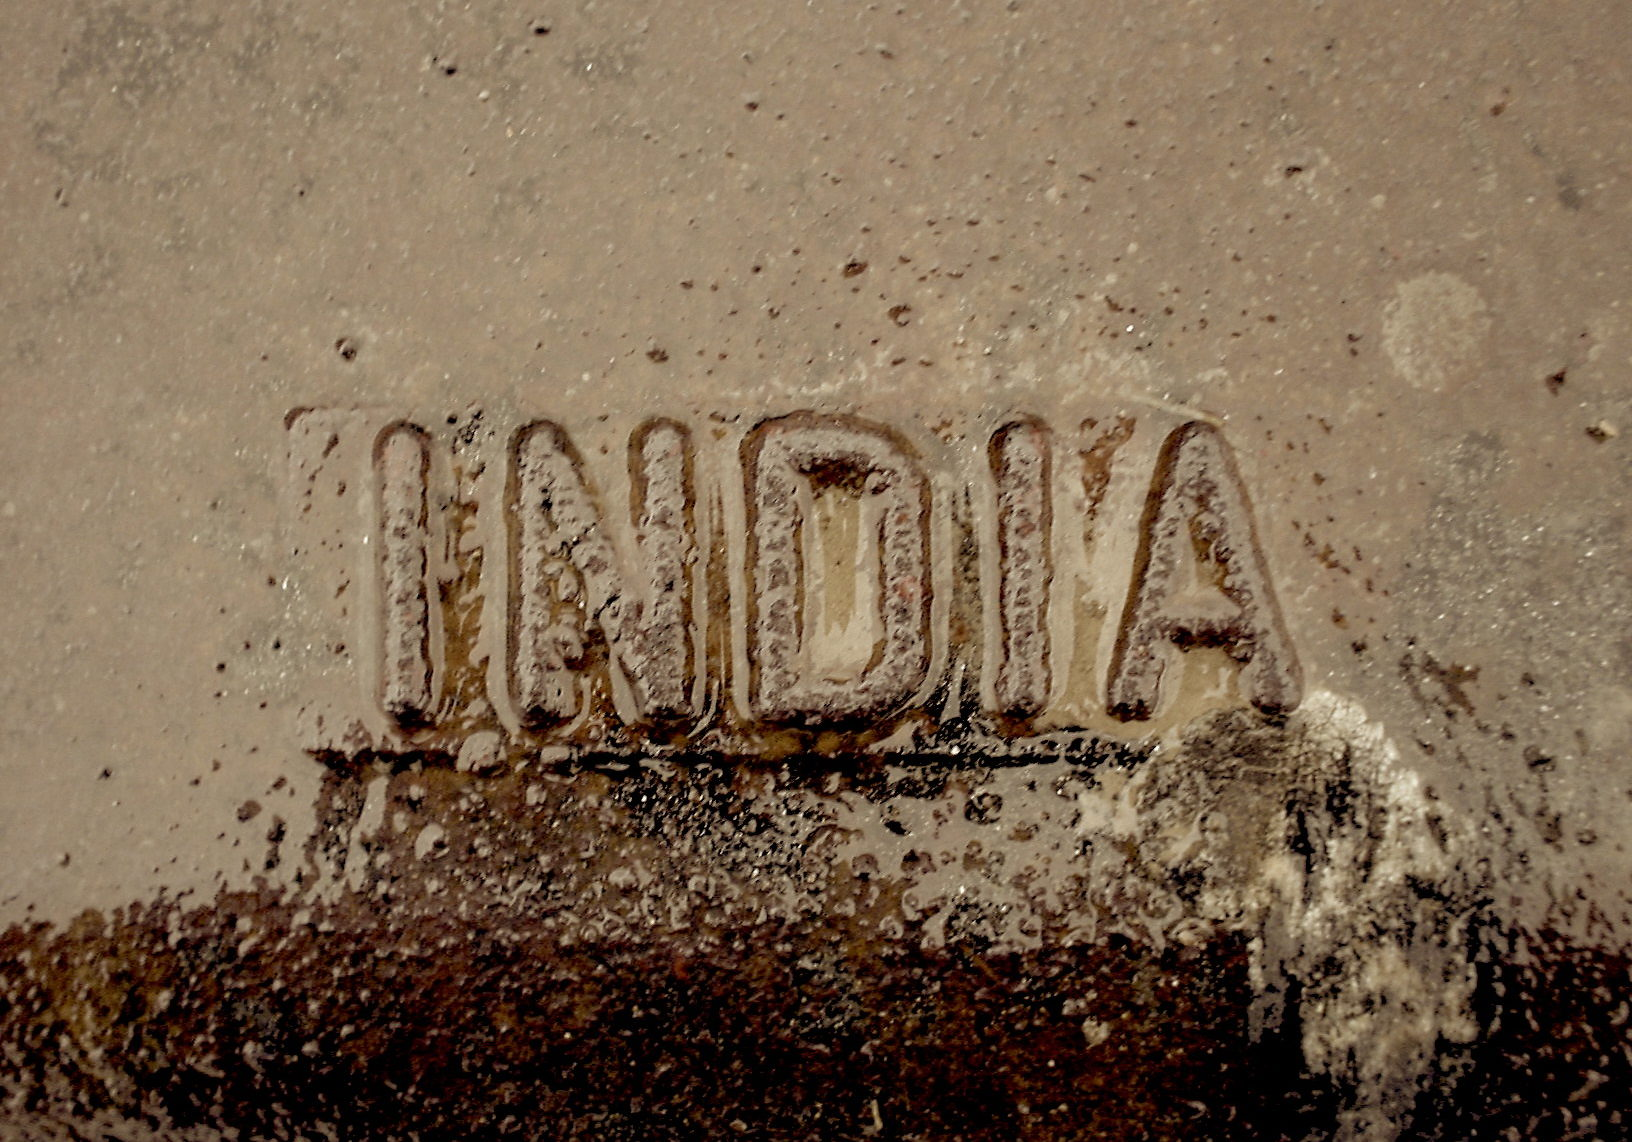 India storm drain cover Flickr_Nate Grigg